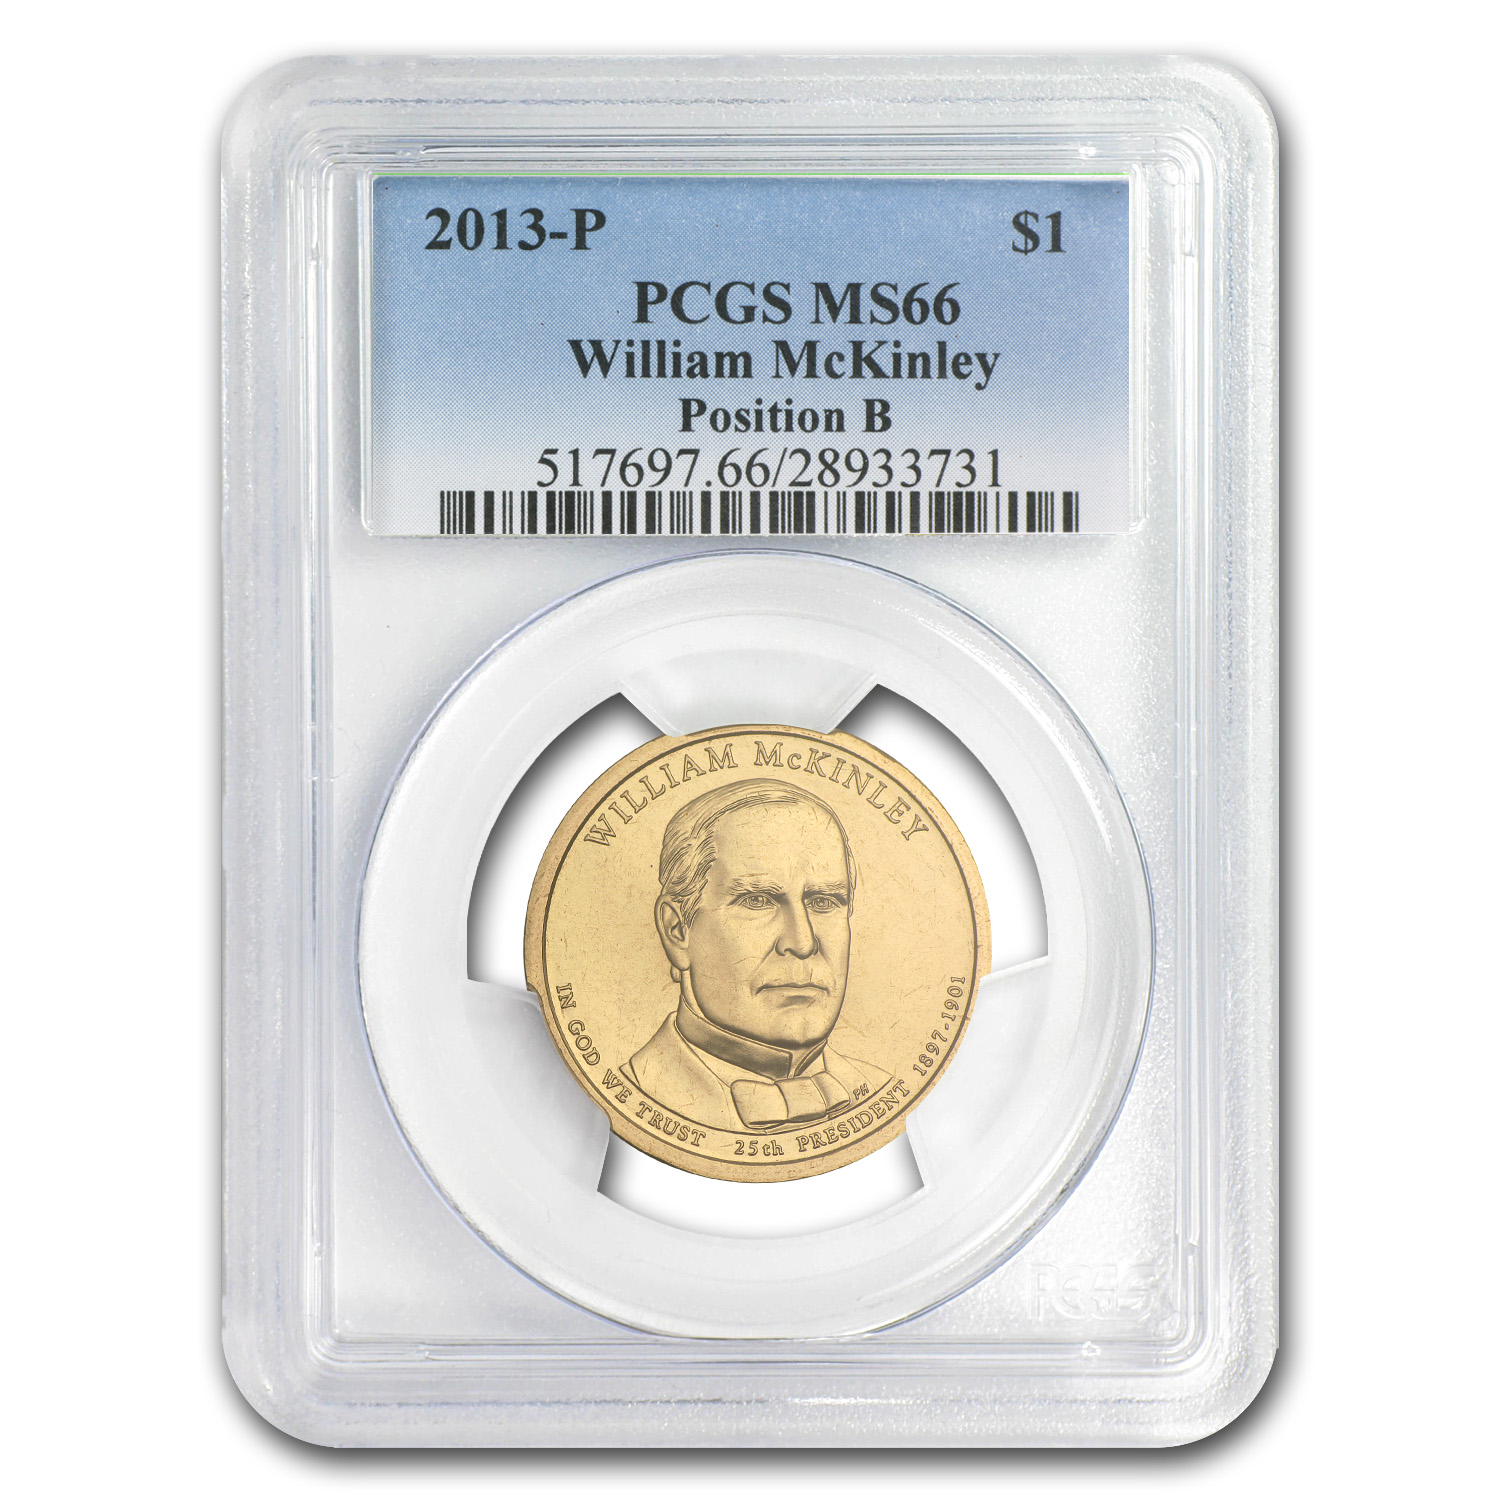 2013-P Wm McKinley Presidential Dollar MS-66 PCGS (Position B)